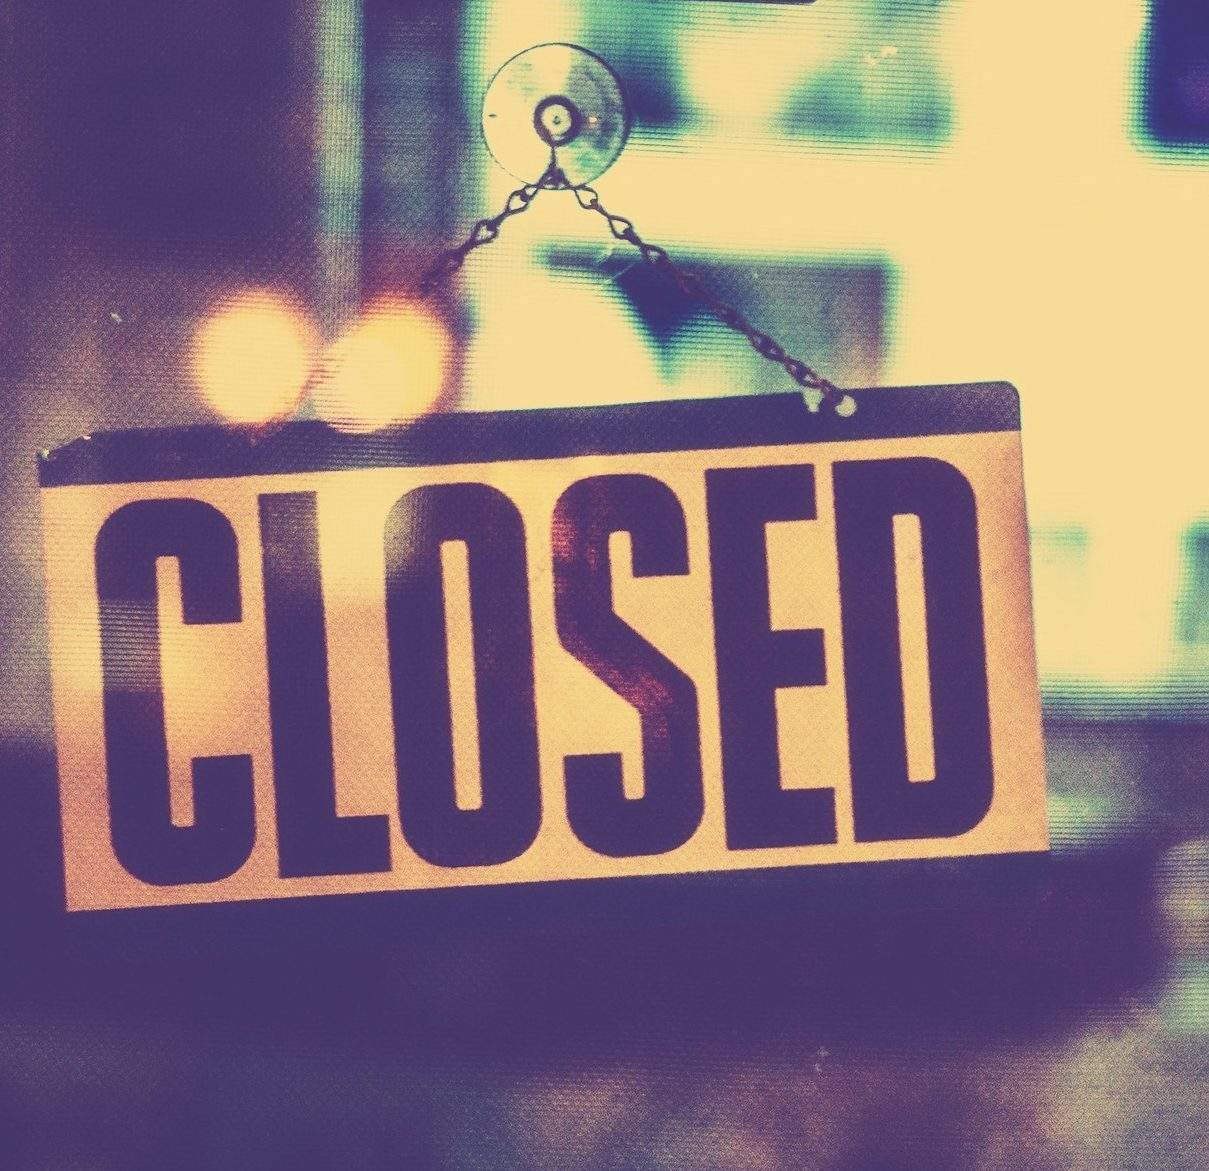 Image of Closed graphic